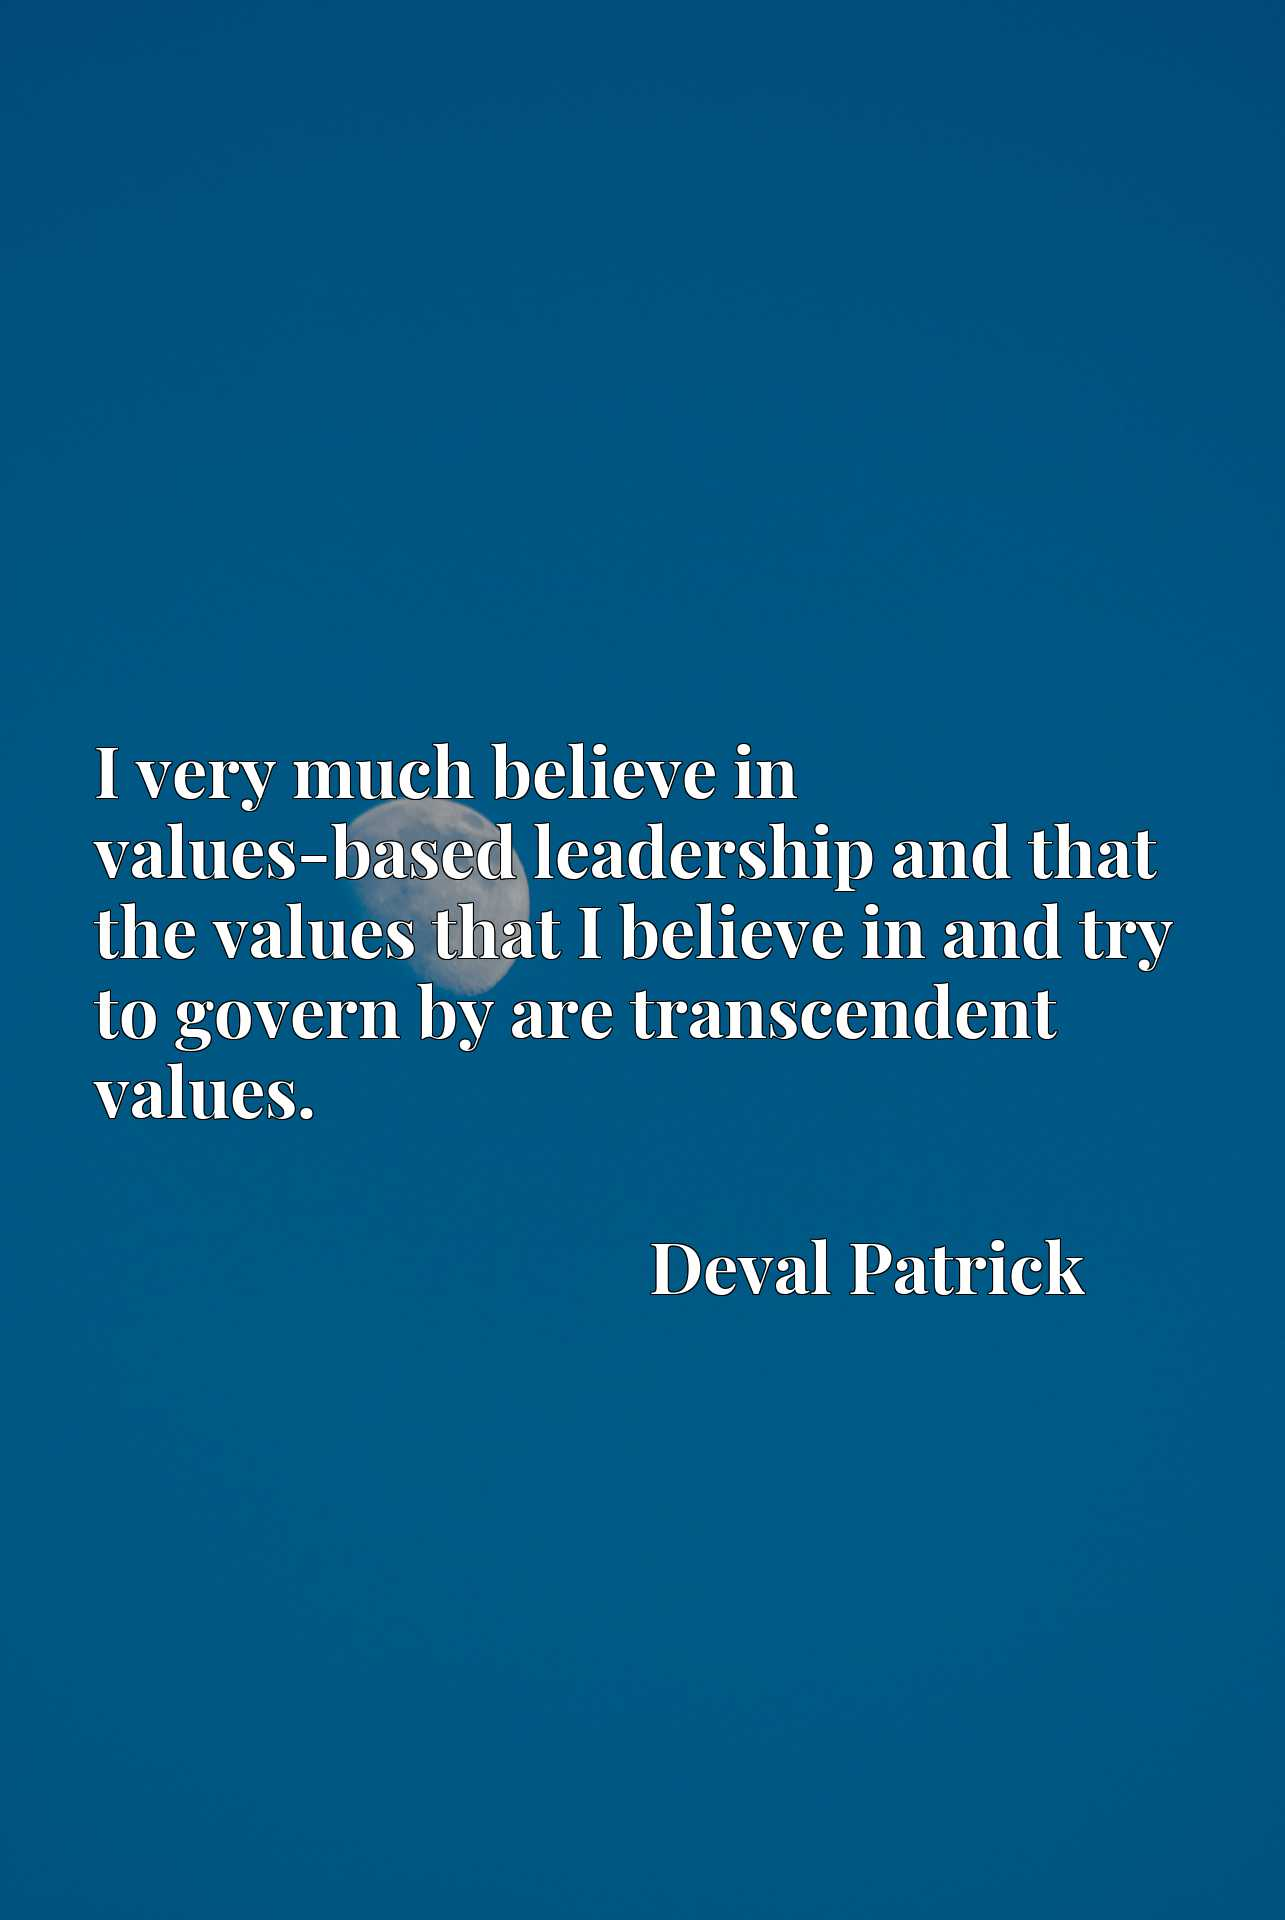 I very much believe in values-based leadership and that the values that I believe in and try to govern by are transcendent values.